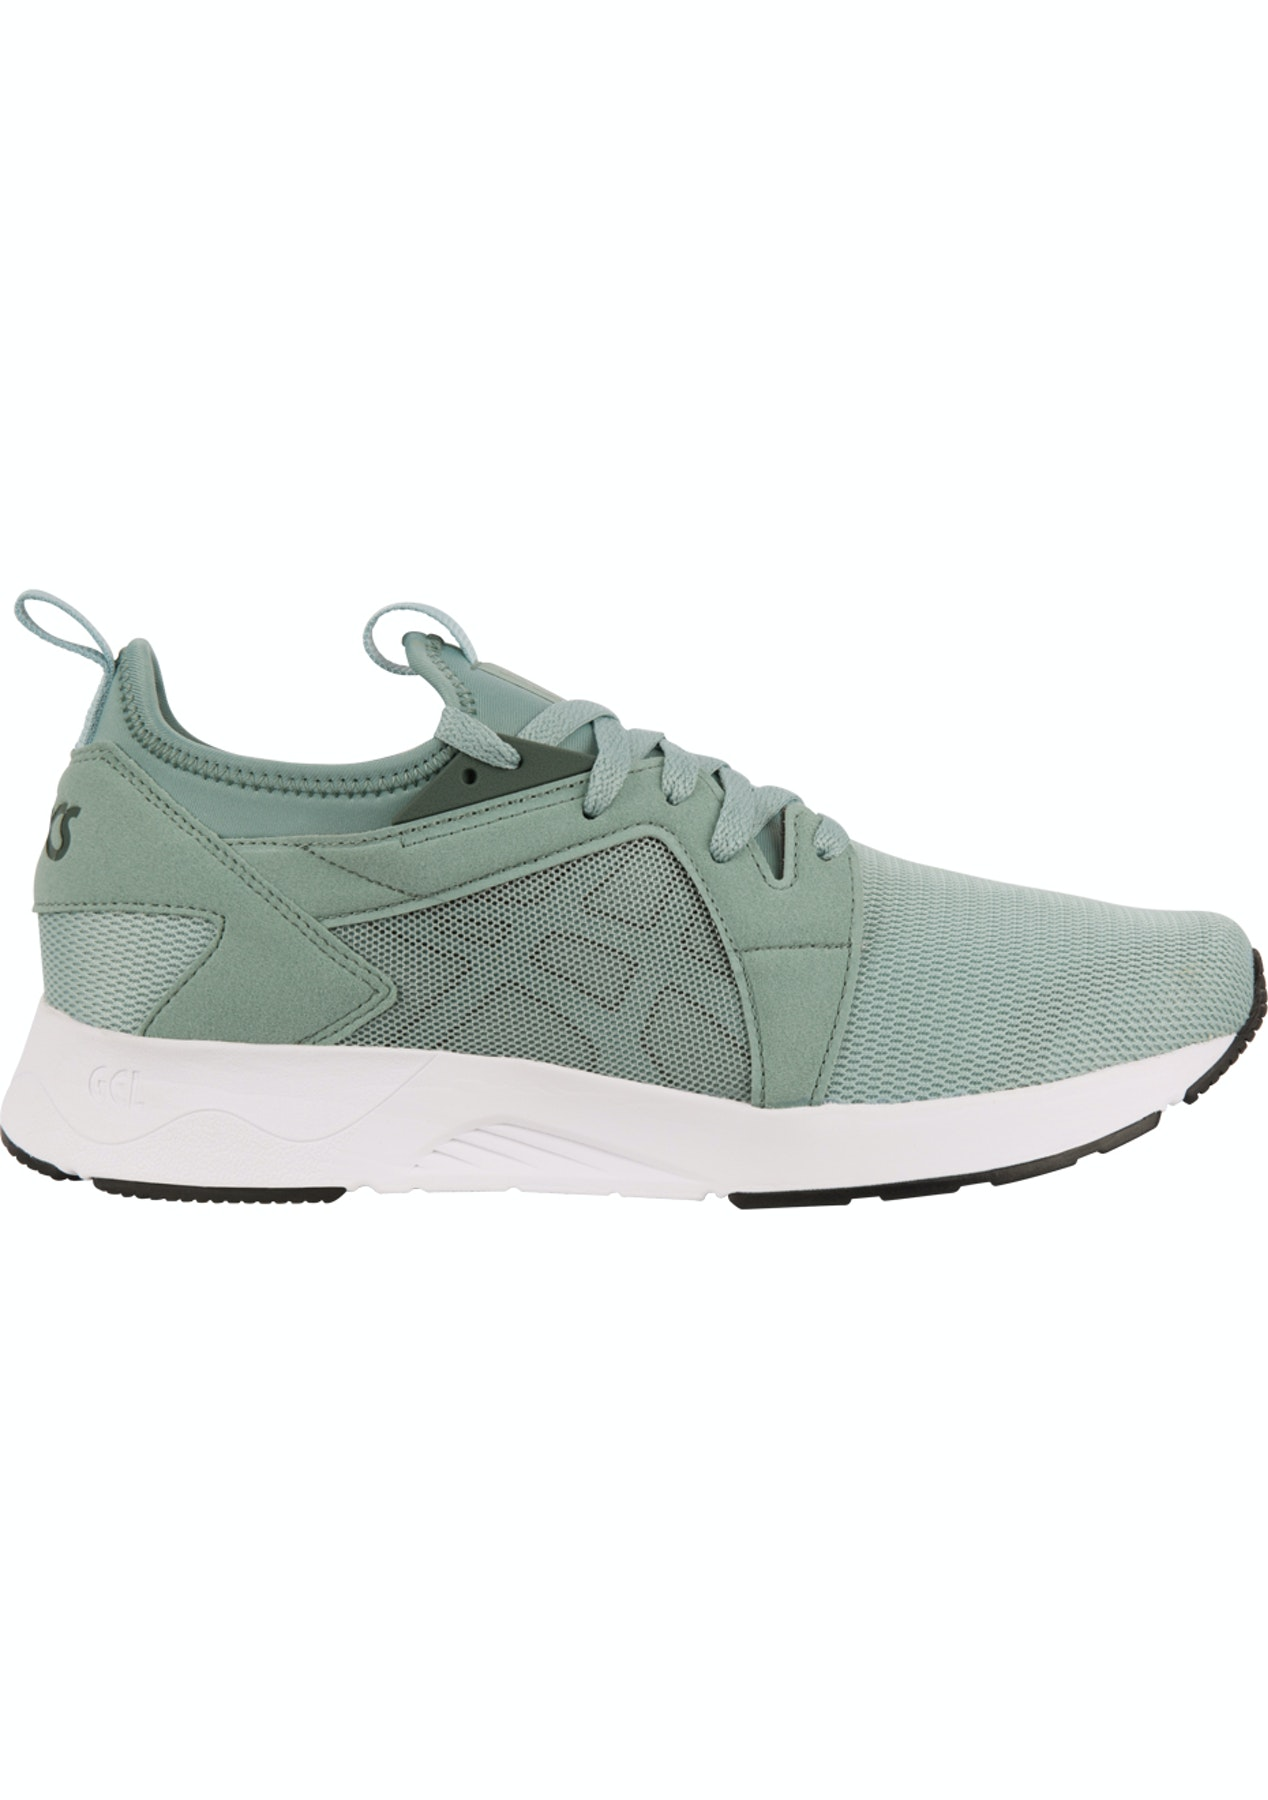 huge selection of f0b79 776e9 Asics Tiger - Gel-Lyte V RB - Unisex - Blue Surf/Blue Surf